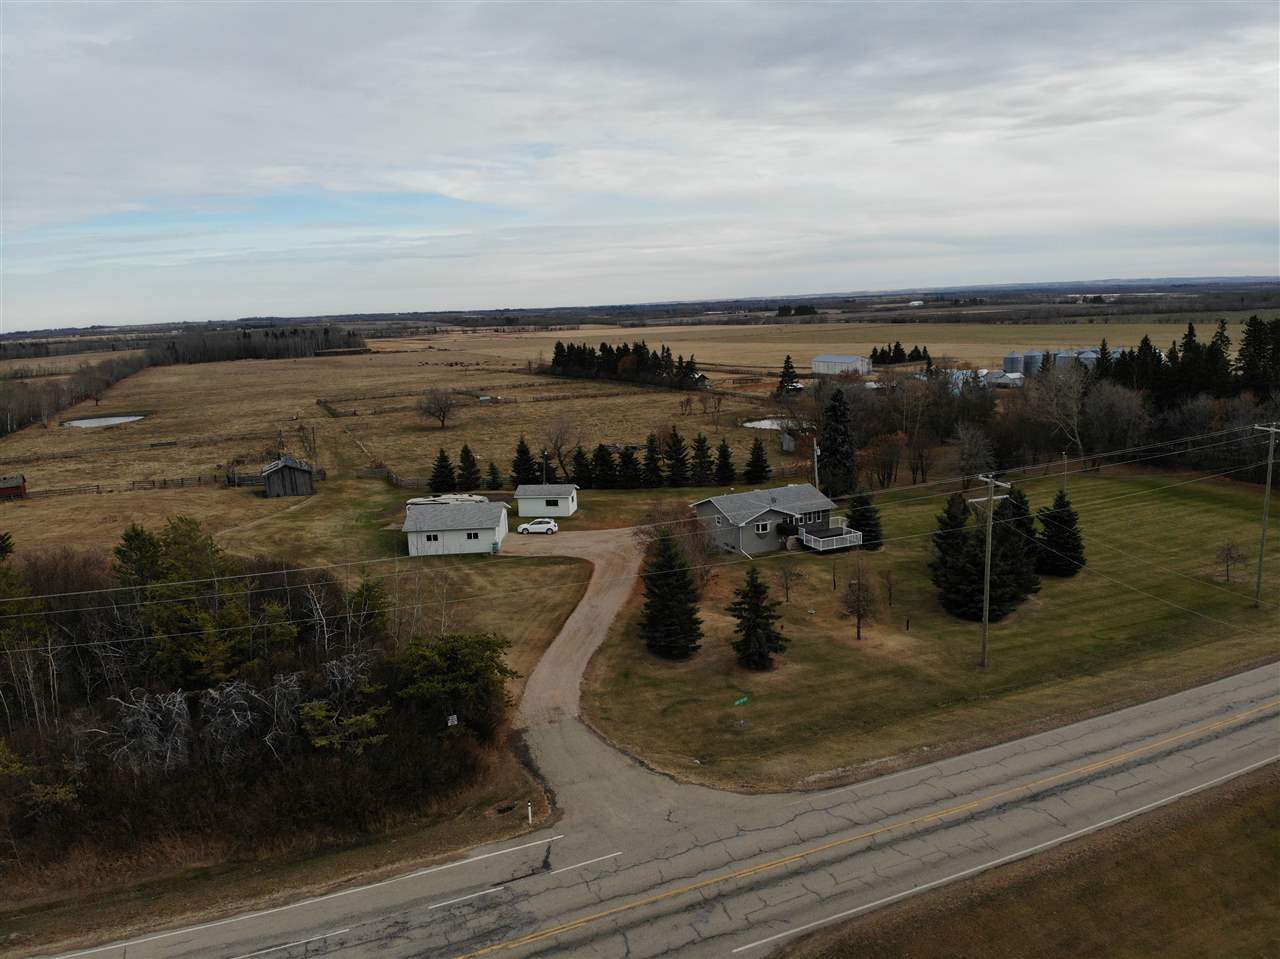 Gorgeous & increasingly rare find for a parcel size of 20 acres w/ modernized & attractive 4 bdrm, 2 bath, Main flr Laundry Bungalow w/ fully finished bsmnt located under 10 min NE of Barrhead along hwy 769. Home features opened concept design, plentiful bright kitchen cabinetry, quality appliances, excellent large living room w/ fireplace, award worthy restyled main Bath plus great bsmnt family area large enough for pool table, cold room, updated utilities & more. 2 full size front & back sitting decks. Over-sized 26x28 heated Garage/ Shop, R.V Pad parking plus extra quality storage Building. Sprawling well presented landscaping includes Apple & Pear orchard, fire pit area, mature spruce, great garden plot plus more to see in person. Land delivers cross fencing, 2 good dug outs, multiple watering bowls, corrals, extensive pasture & livestock support. A property proudly owned, meticulously kept & continuously updated ready & awaiting you for an active worry free future of enjoyment & unbridled imagination